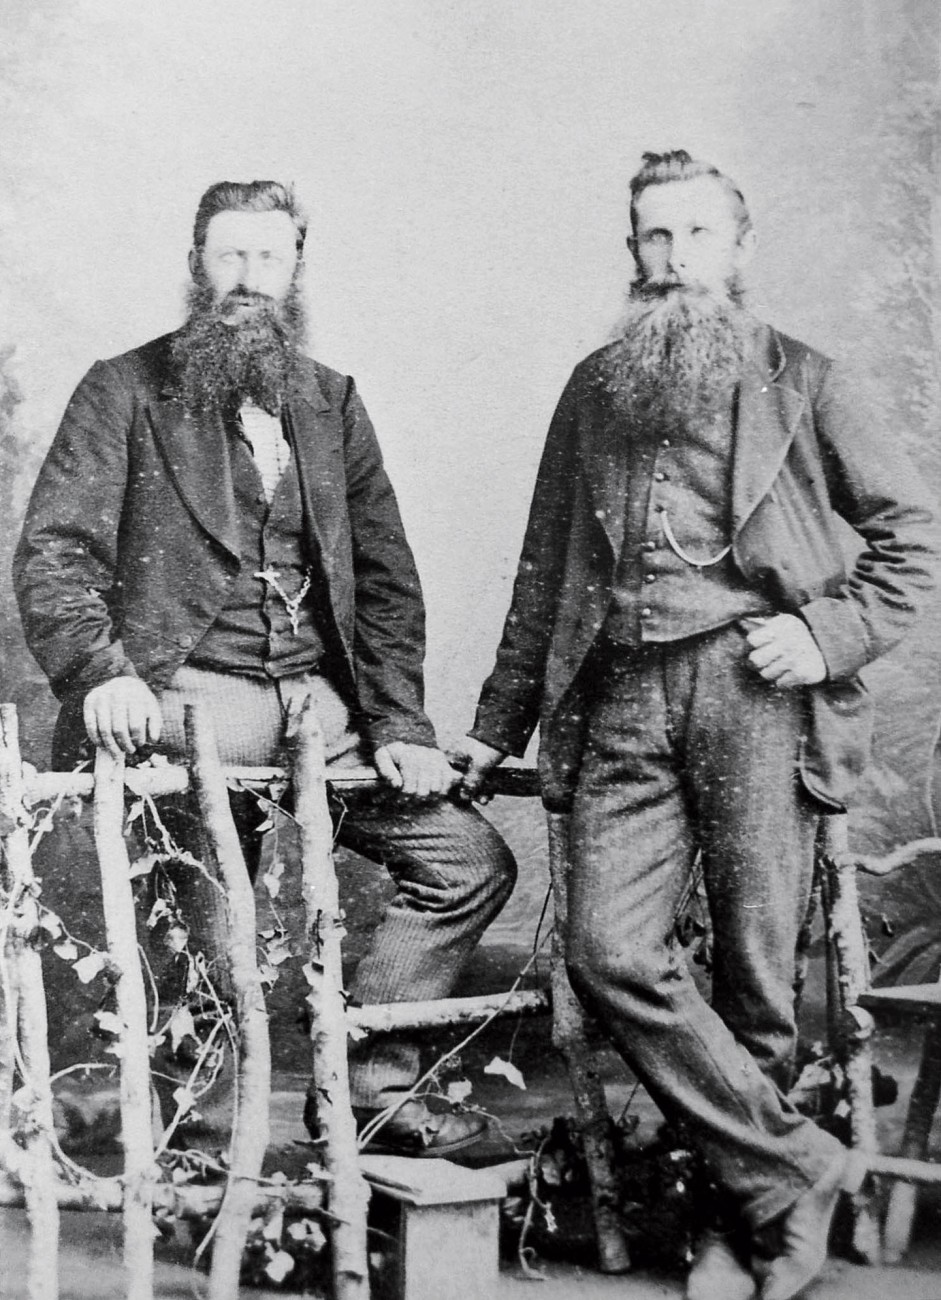 While the most notorious family of distillers were the McRaes, who arrived from the highlands in the early 1870s, there were quite a few of their relatives involved, such as the Murchison brothers.